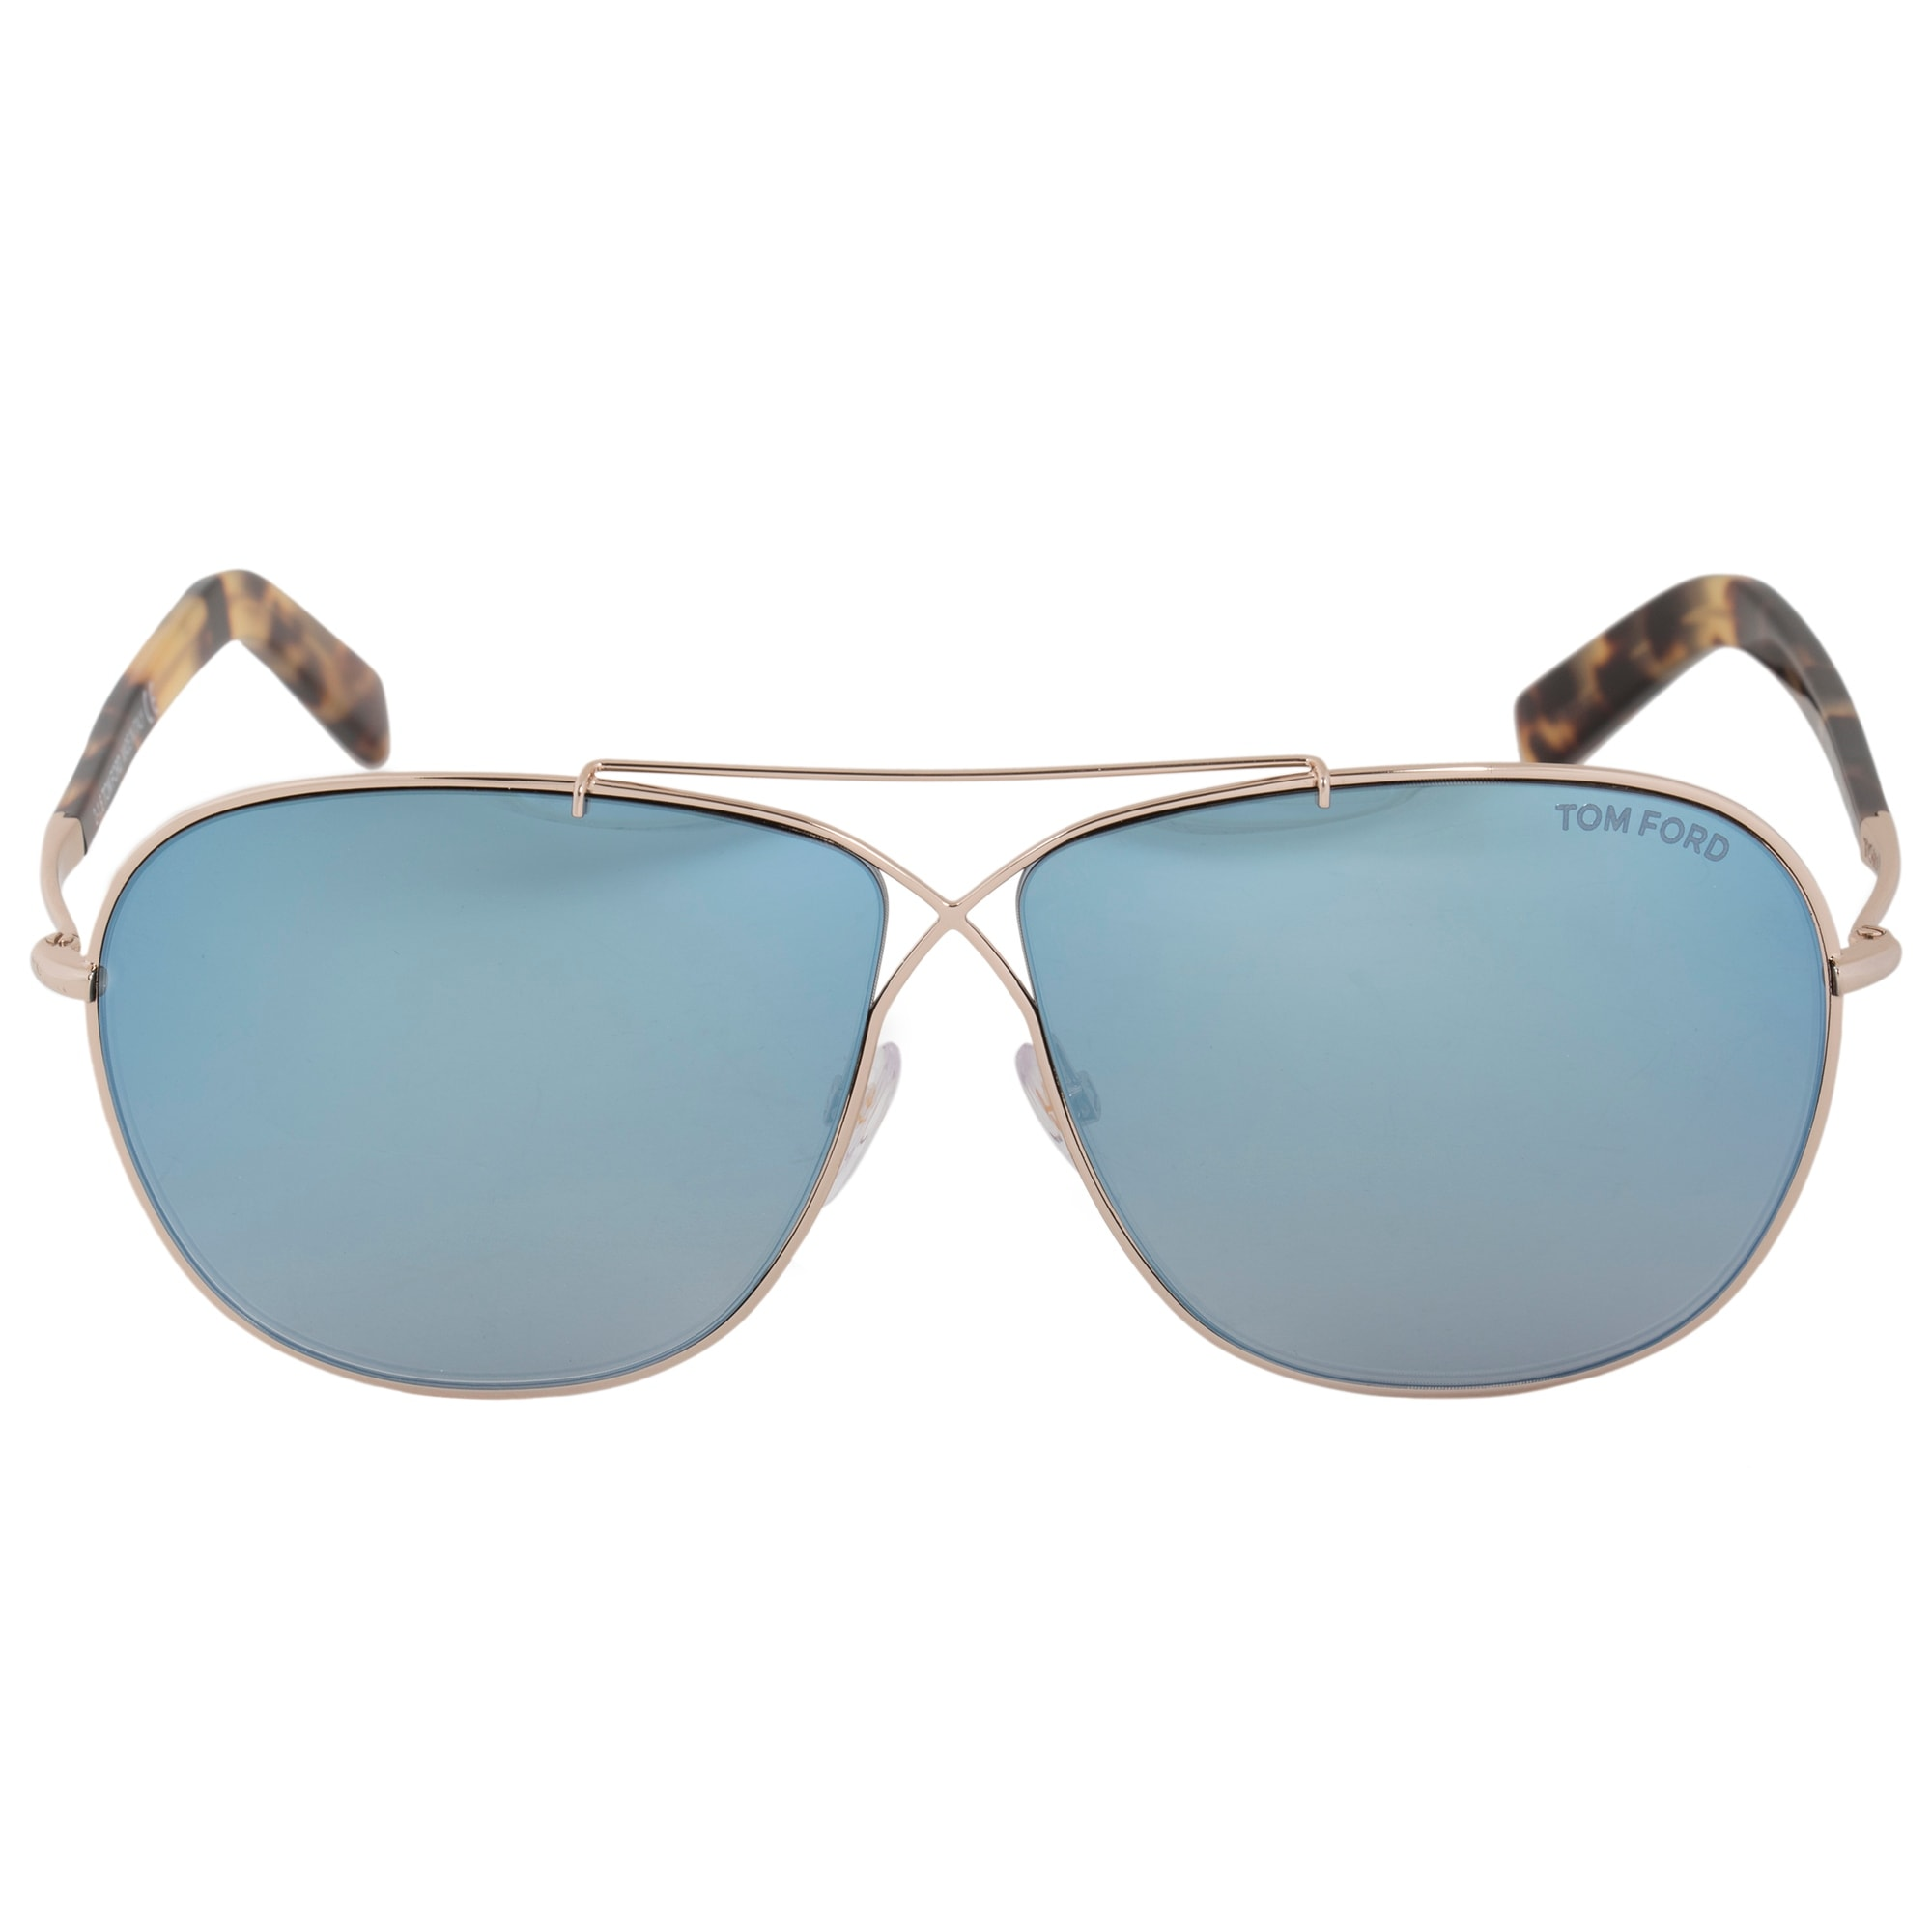 8c4c5a463ede Tom Ford April Pilot Sunglasses FT0393 28X 61 | Gold Frame | Blue Gradient  Mirror Lenses